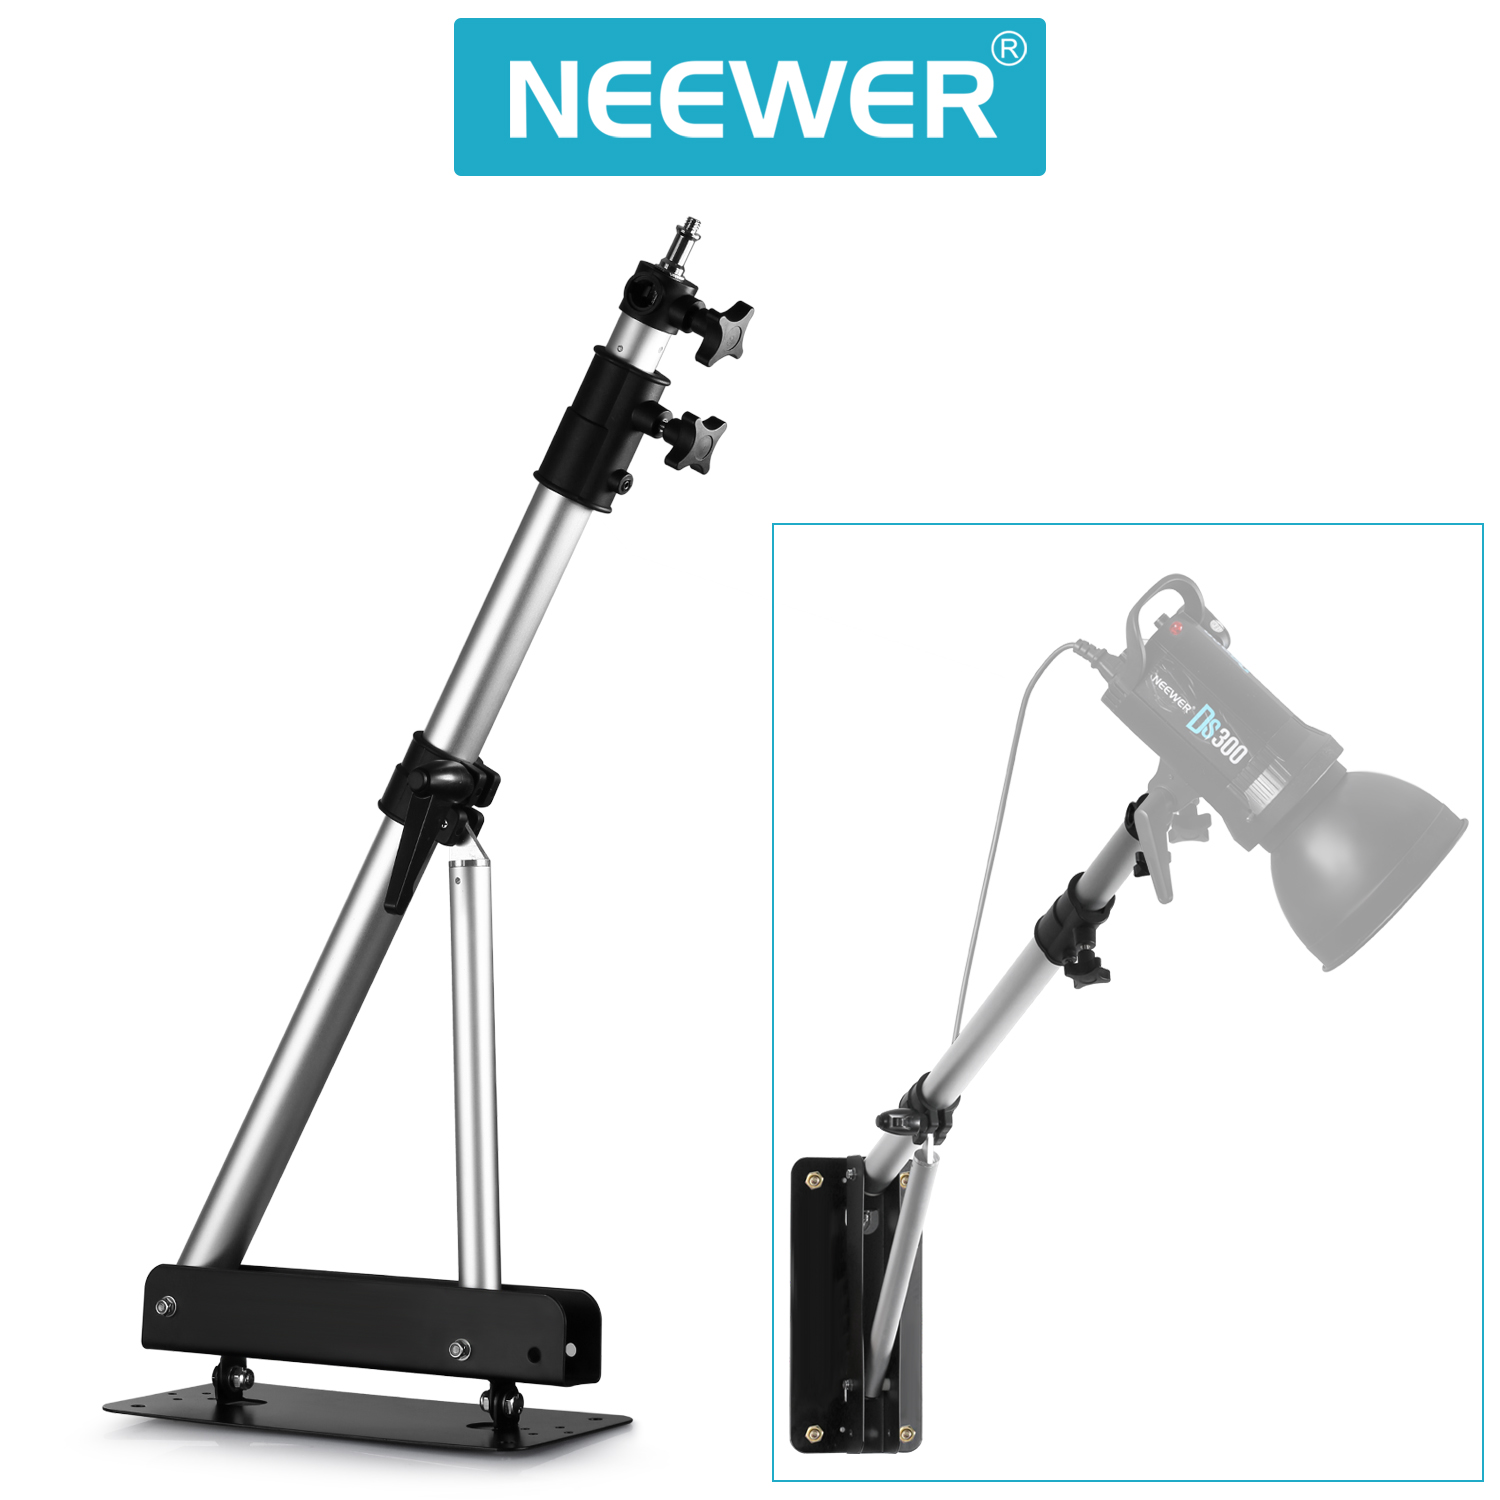 Wall Light Mounting Height : Neewer Max Height 49-inch/125cm Wall Mounting Boom Arm for Studio Video Lights eBay